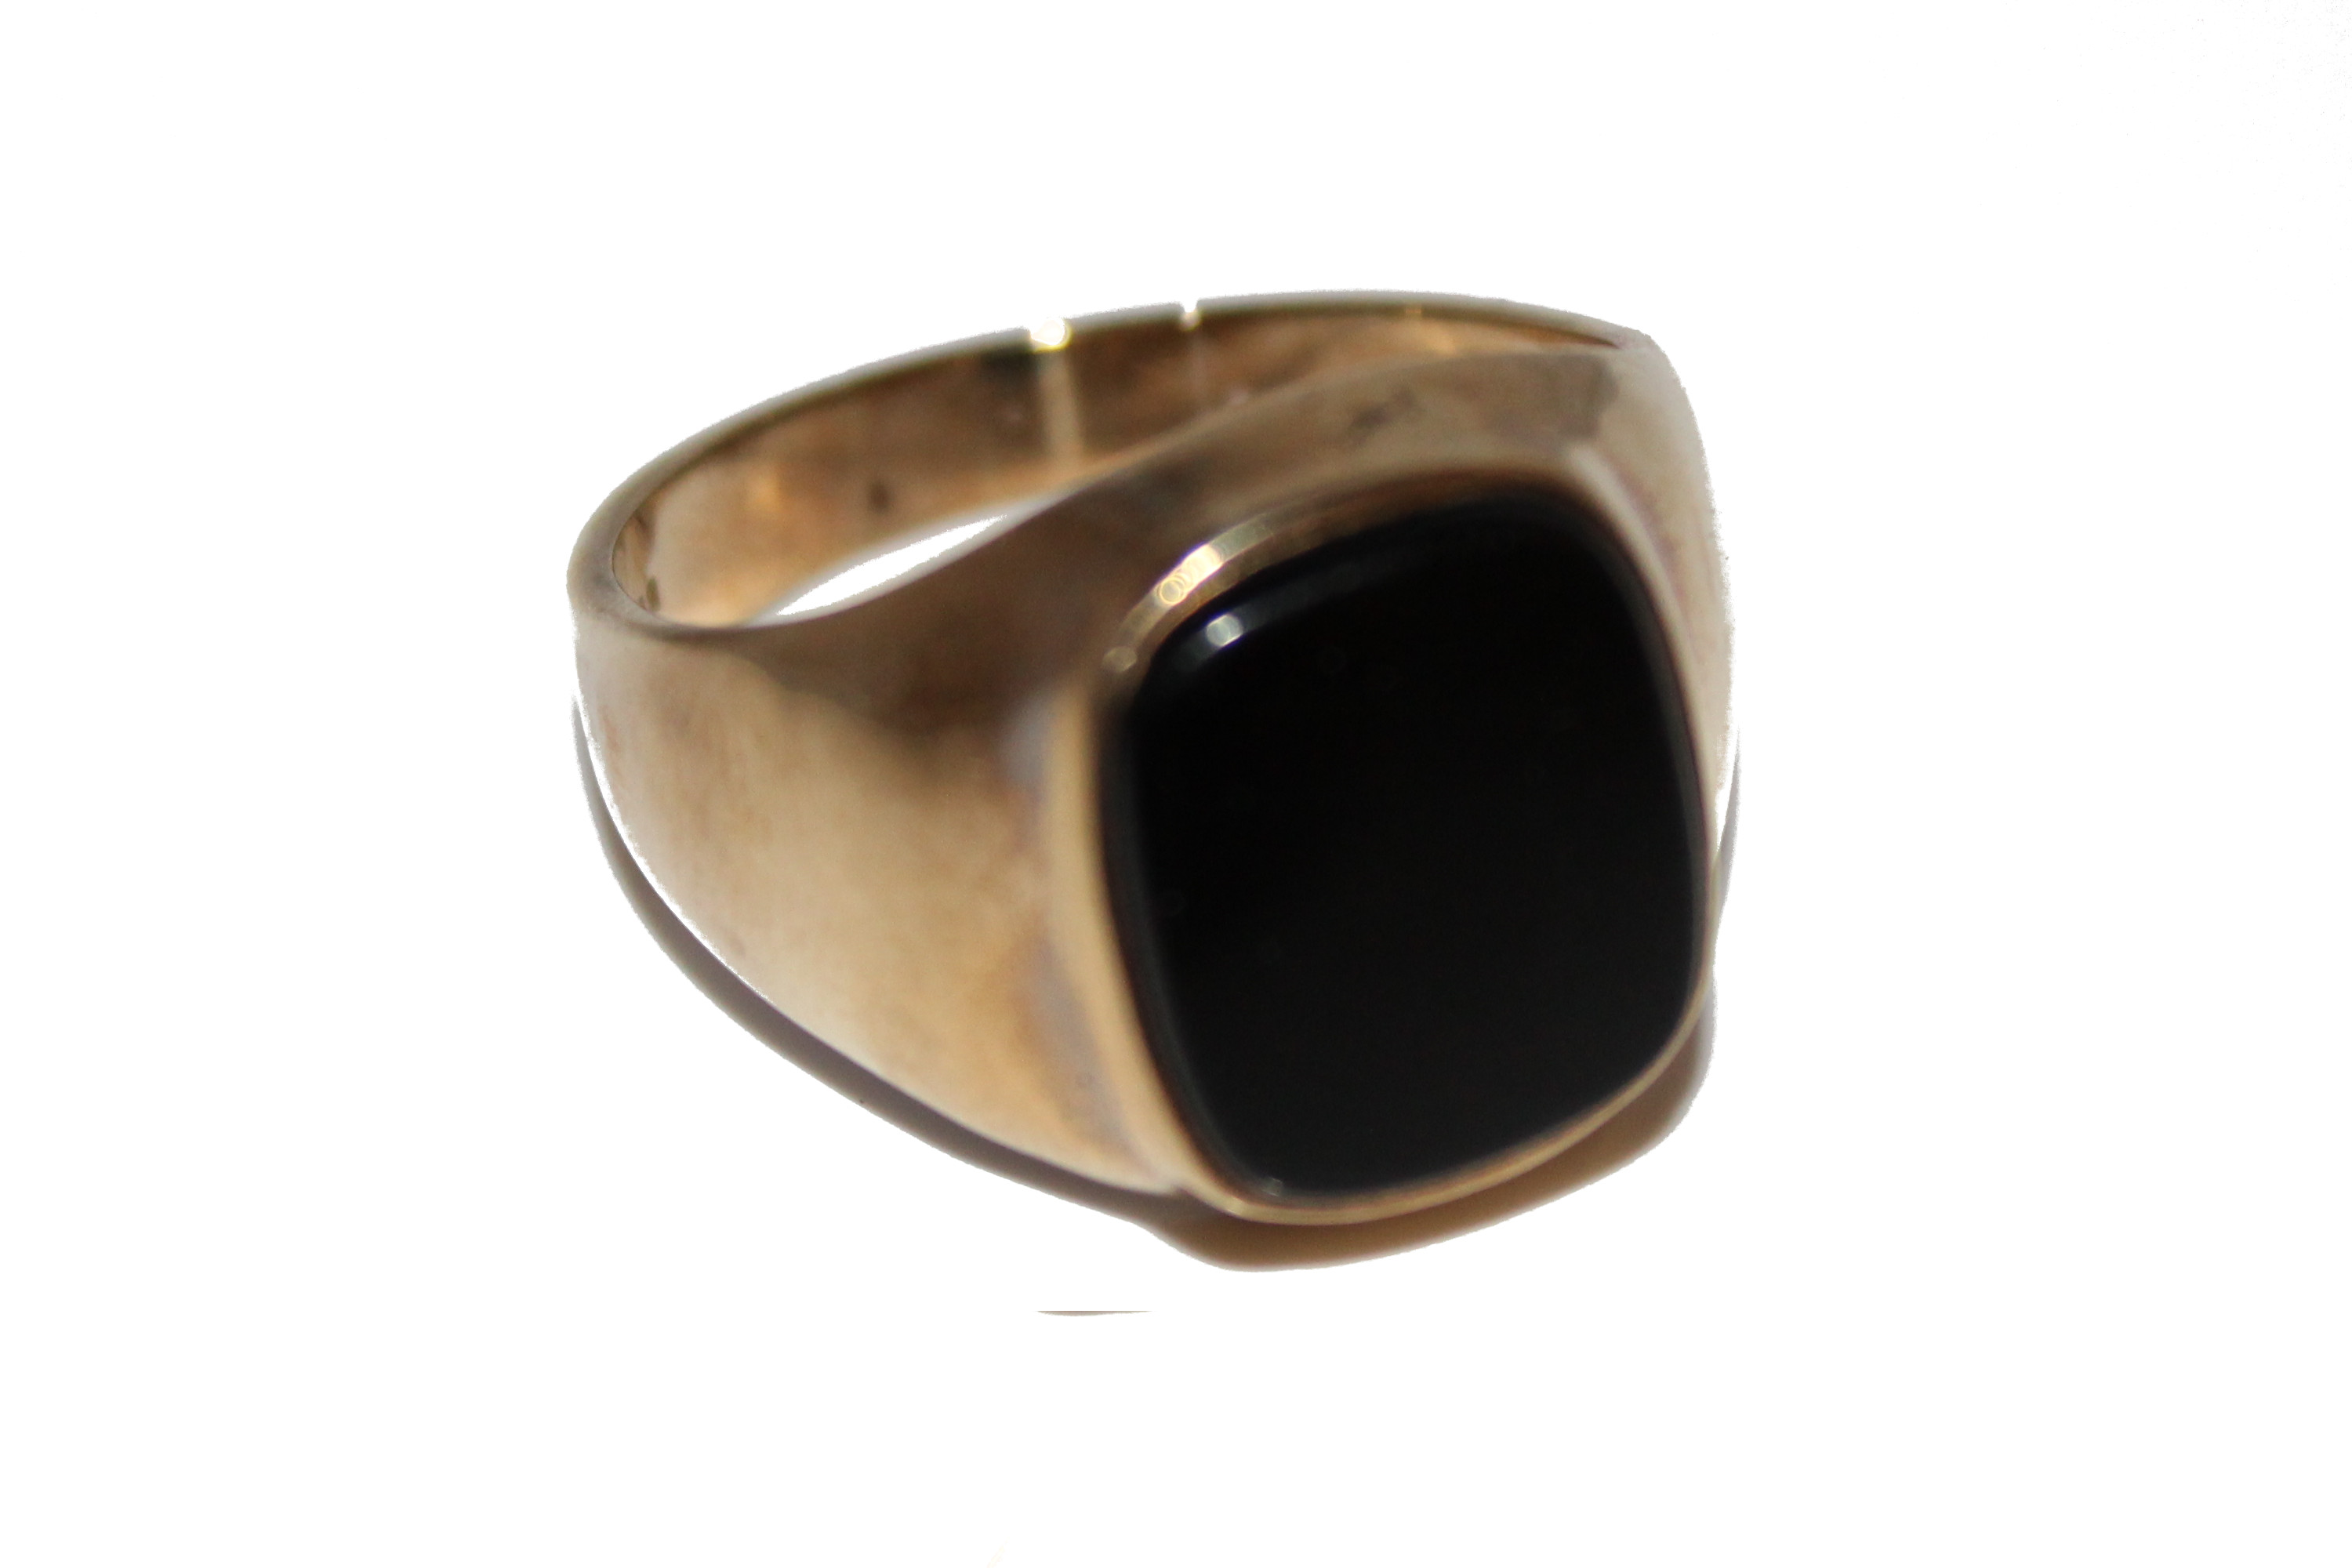 9ct Gents Ring Cabochen £175 O 5 (2)